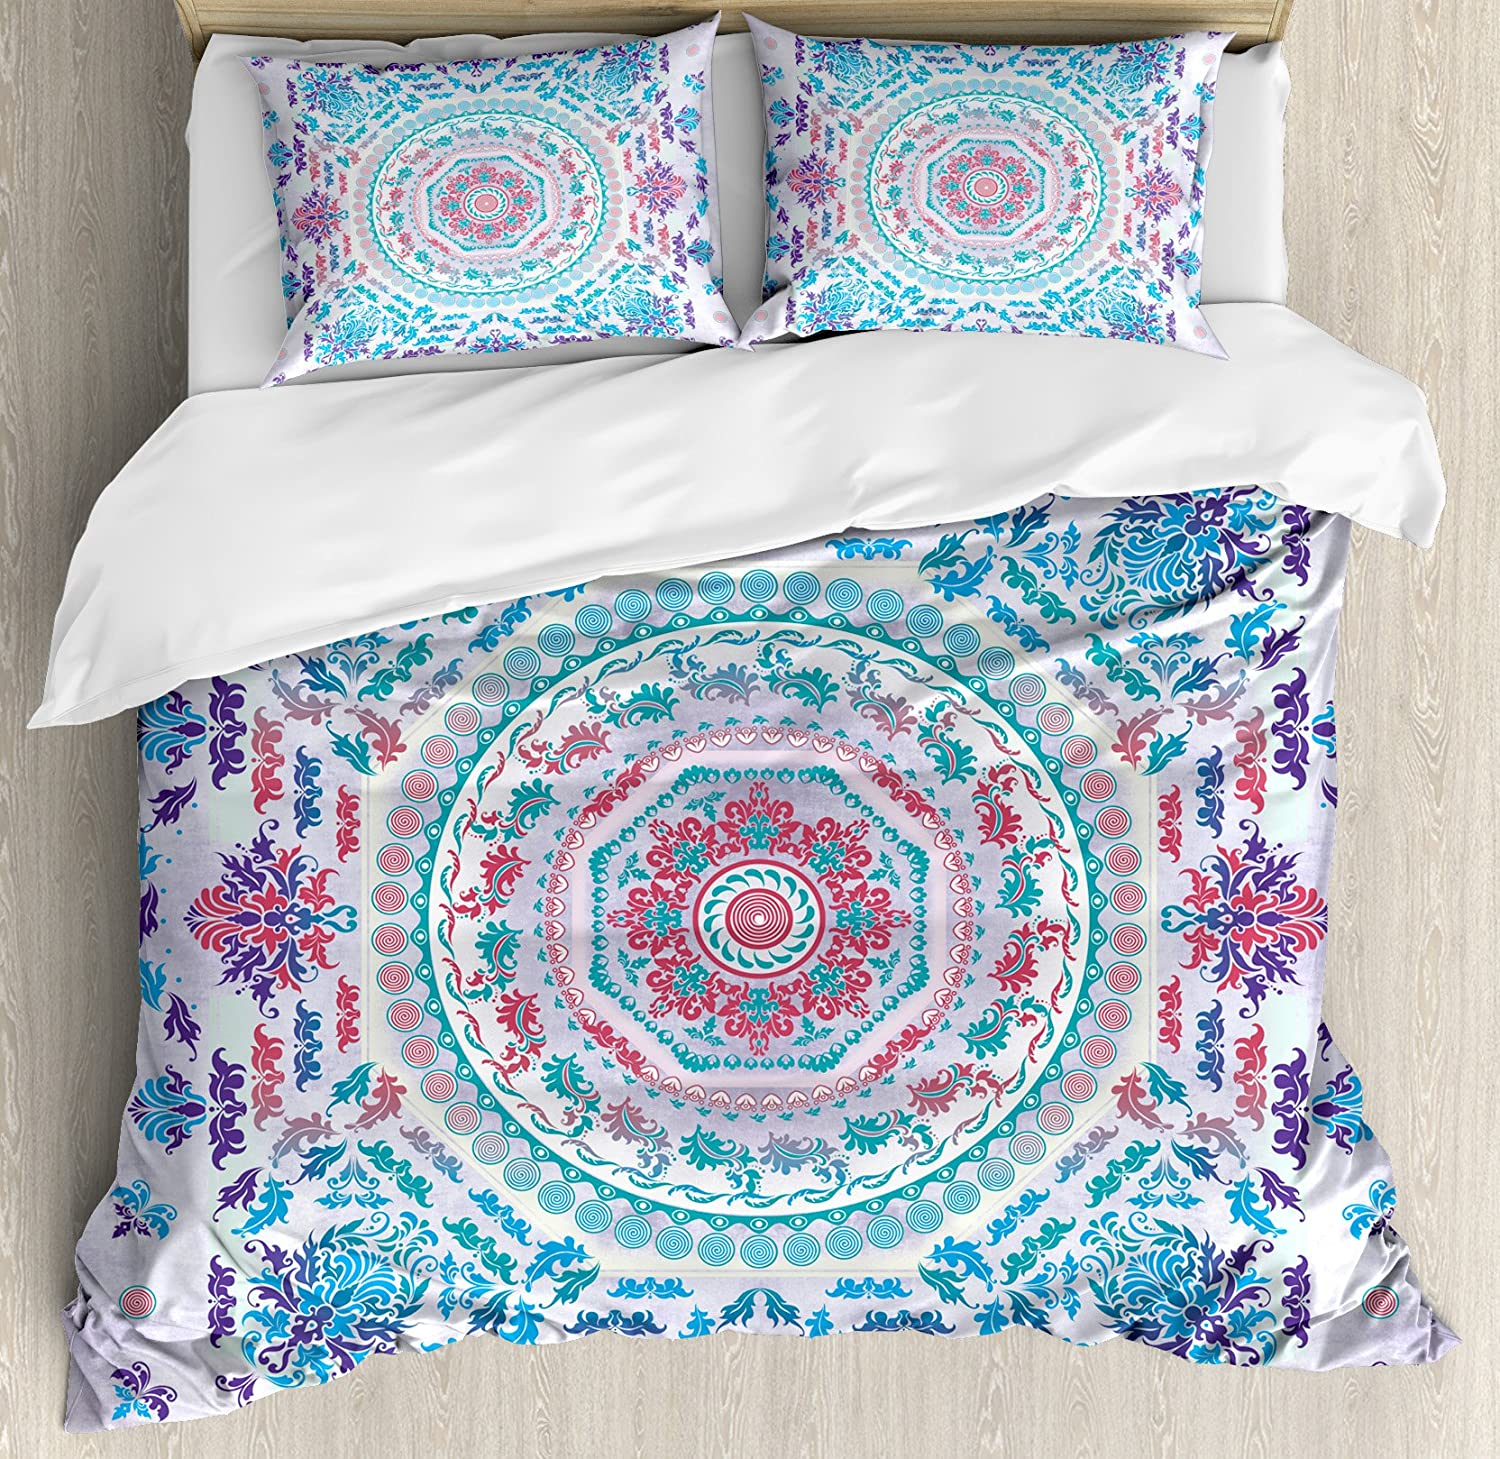 Ambesonne Mandala Duvet Cover Set, Medallion Design Floral Patterns and Leaves Boho Hippie Style Prints, Decorative 3 Piece Bedding Set with 2 Pillow Shams, King Size, Turquoise Purple